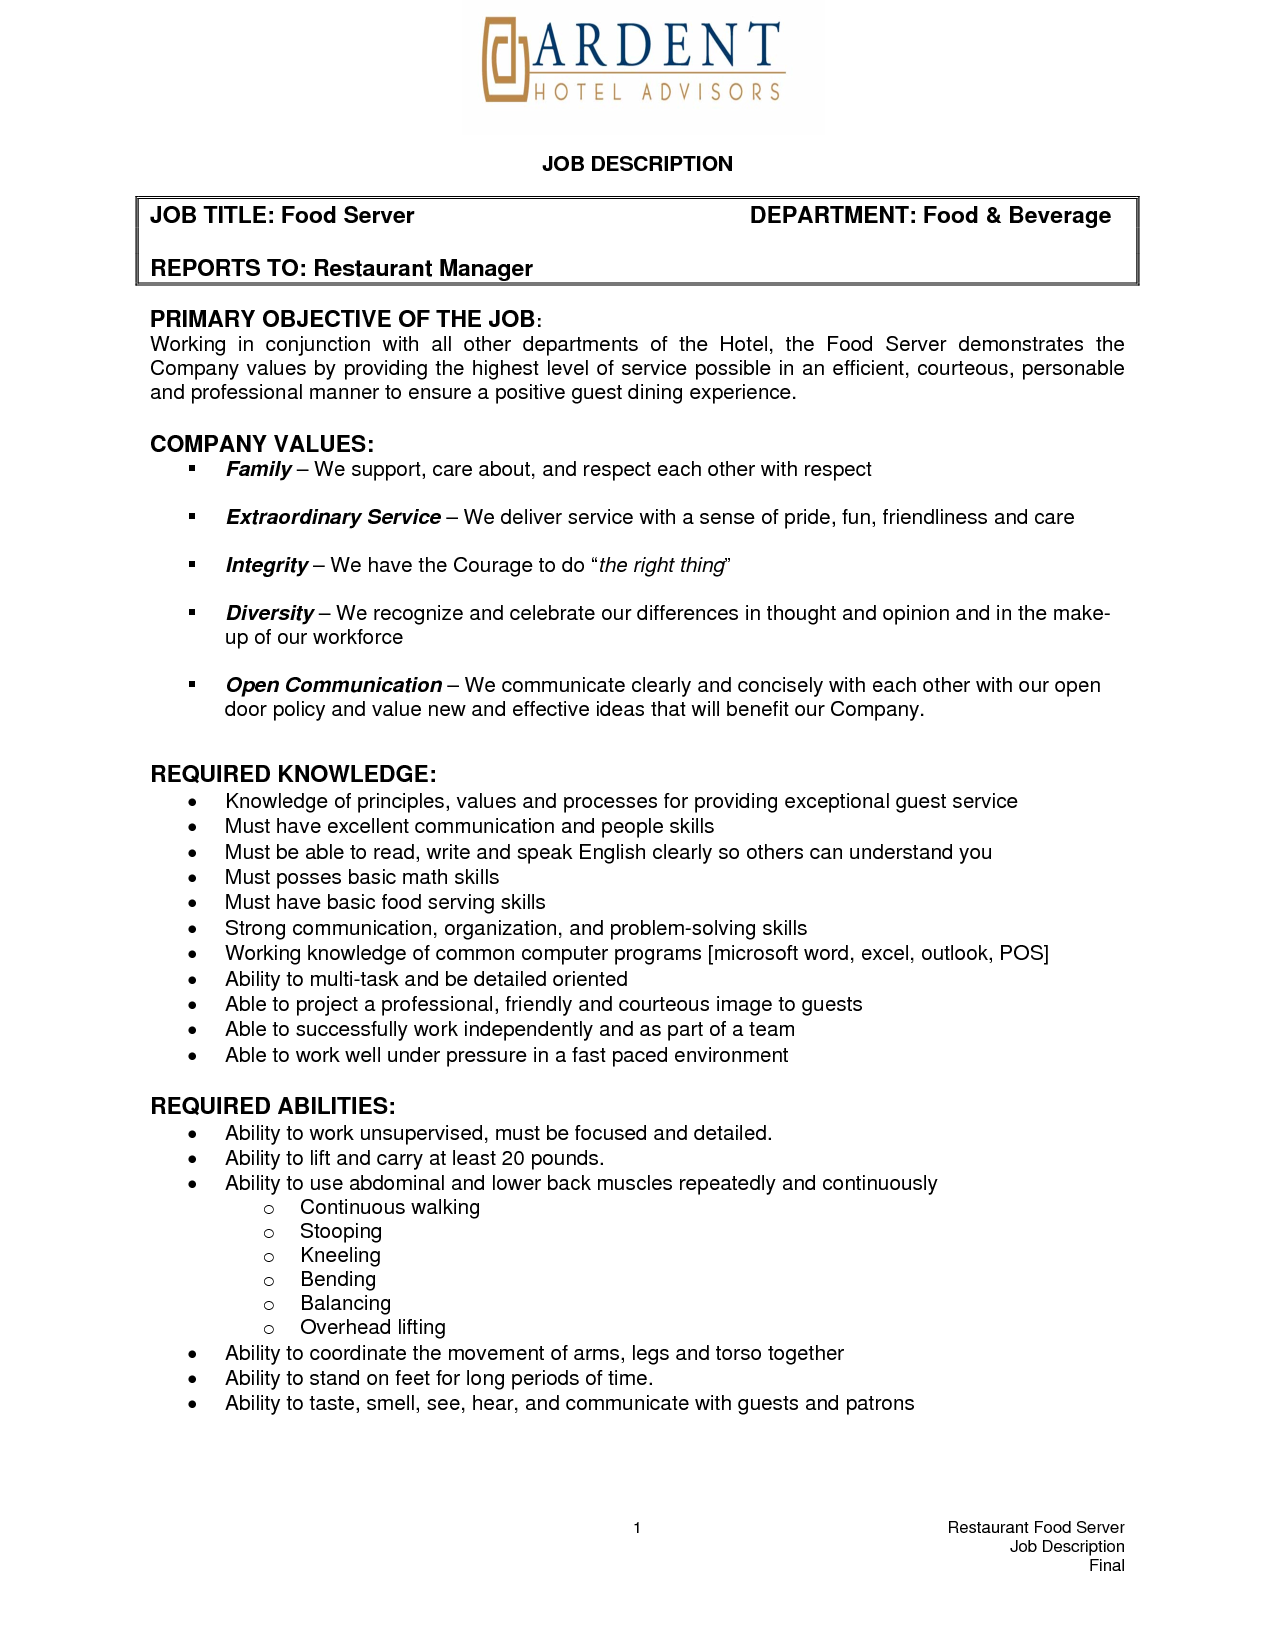 picture gallery of 10 data entry job description for resume